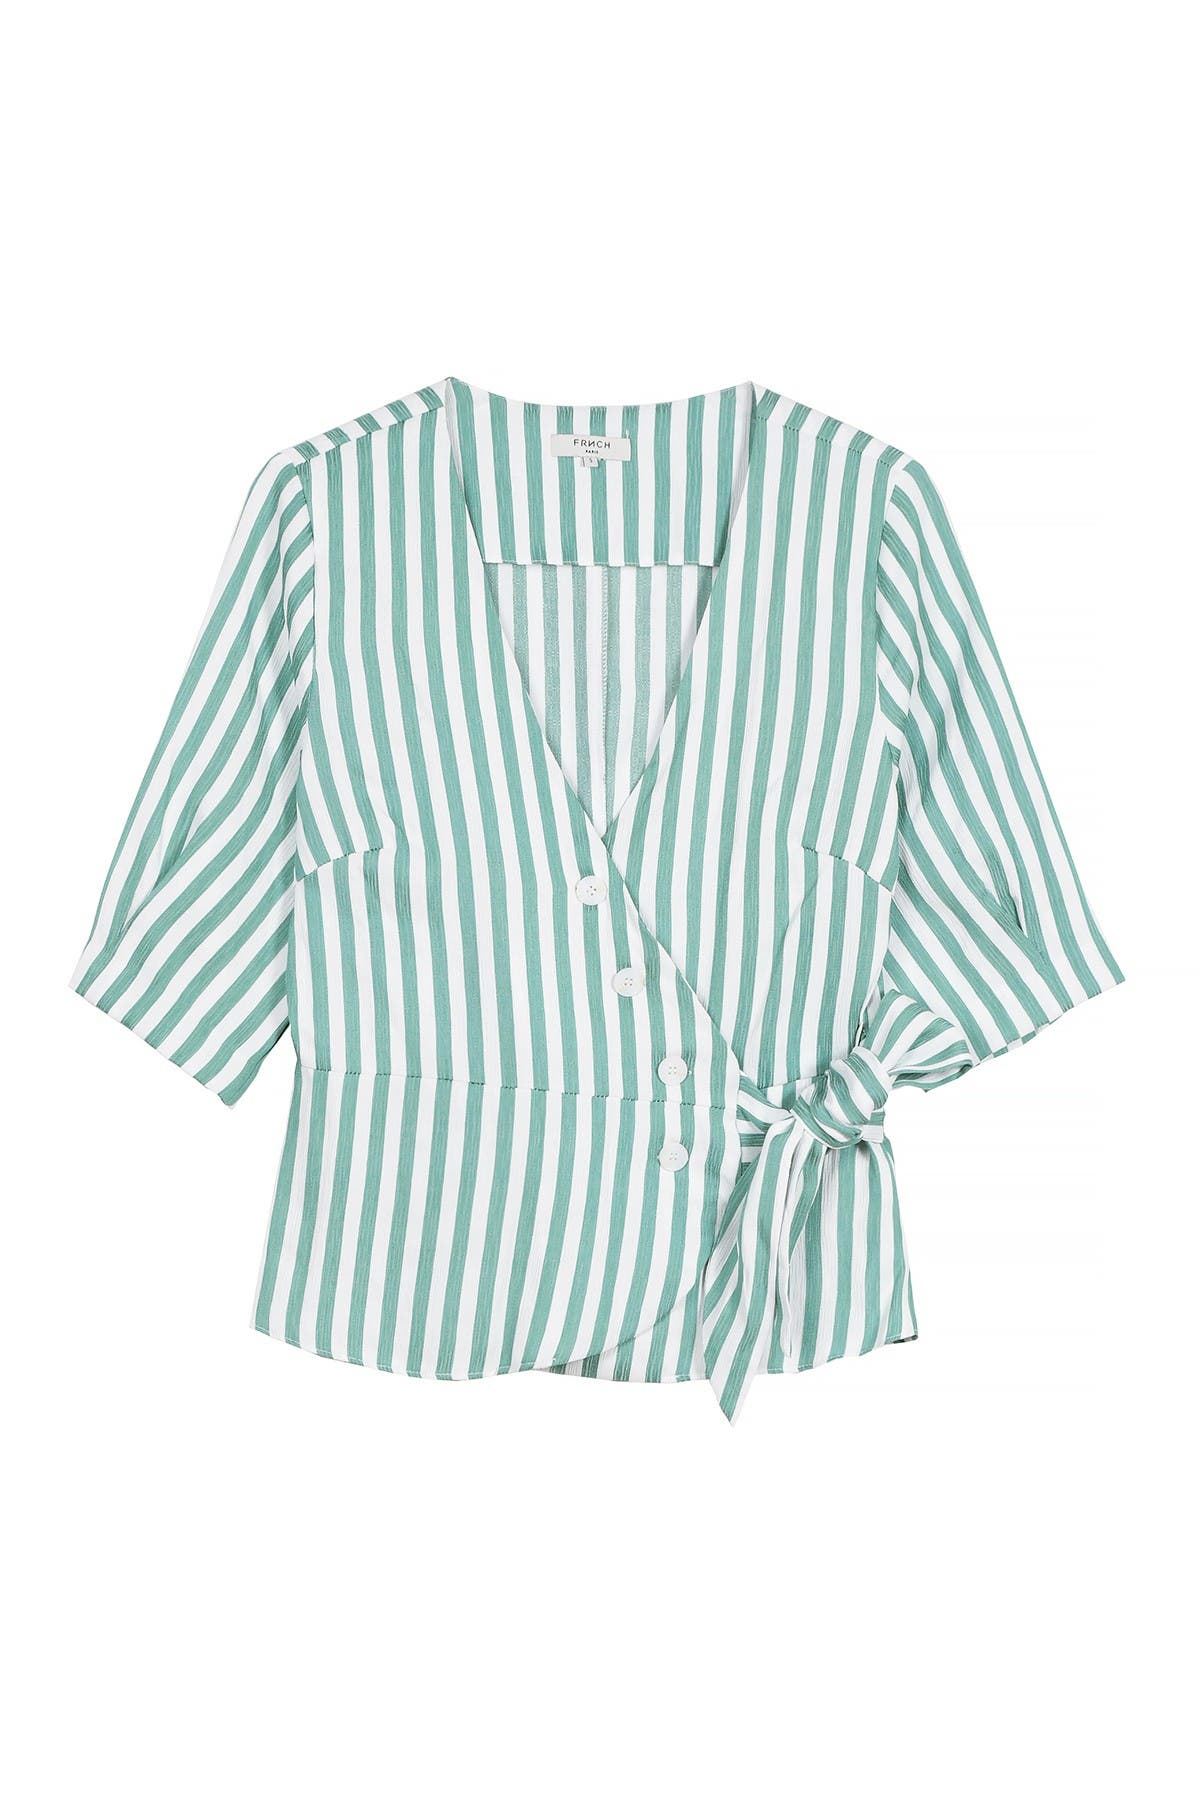 Image of FRNCH Stripe Print Side Tie Blouse